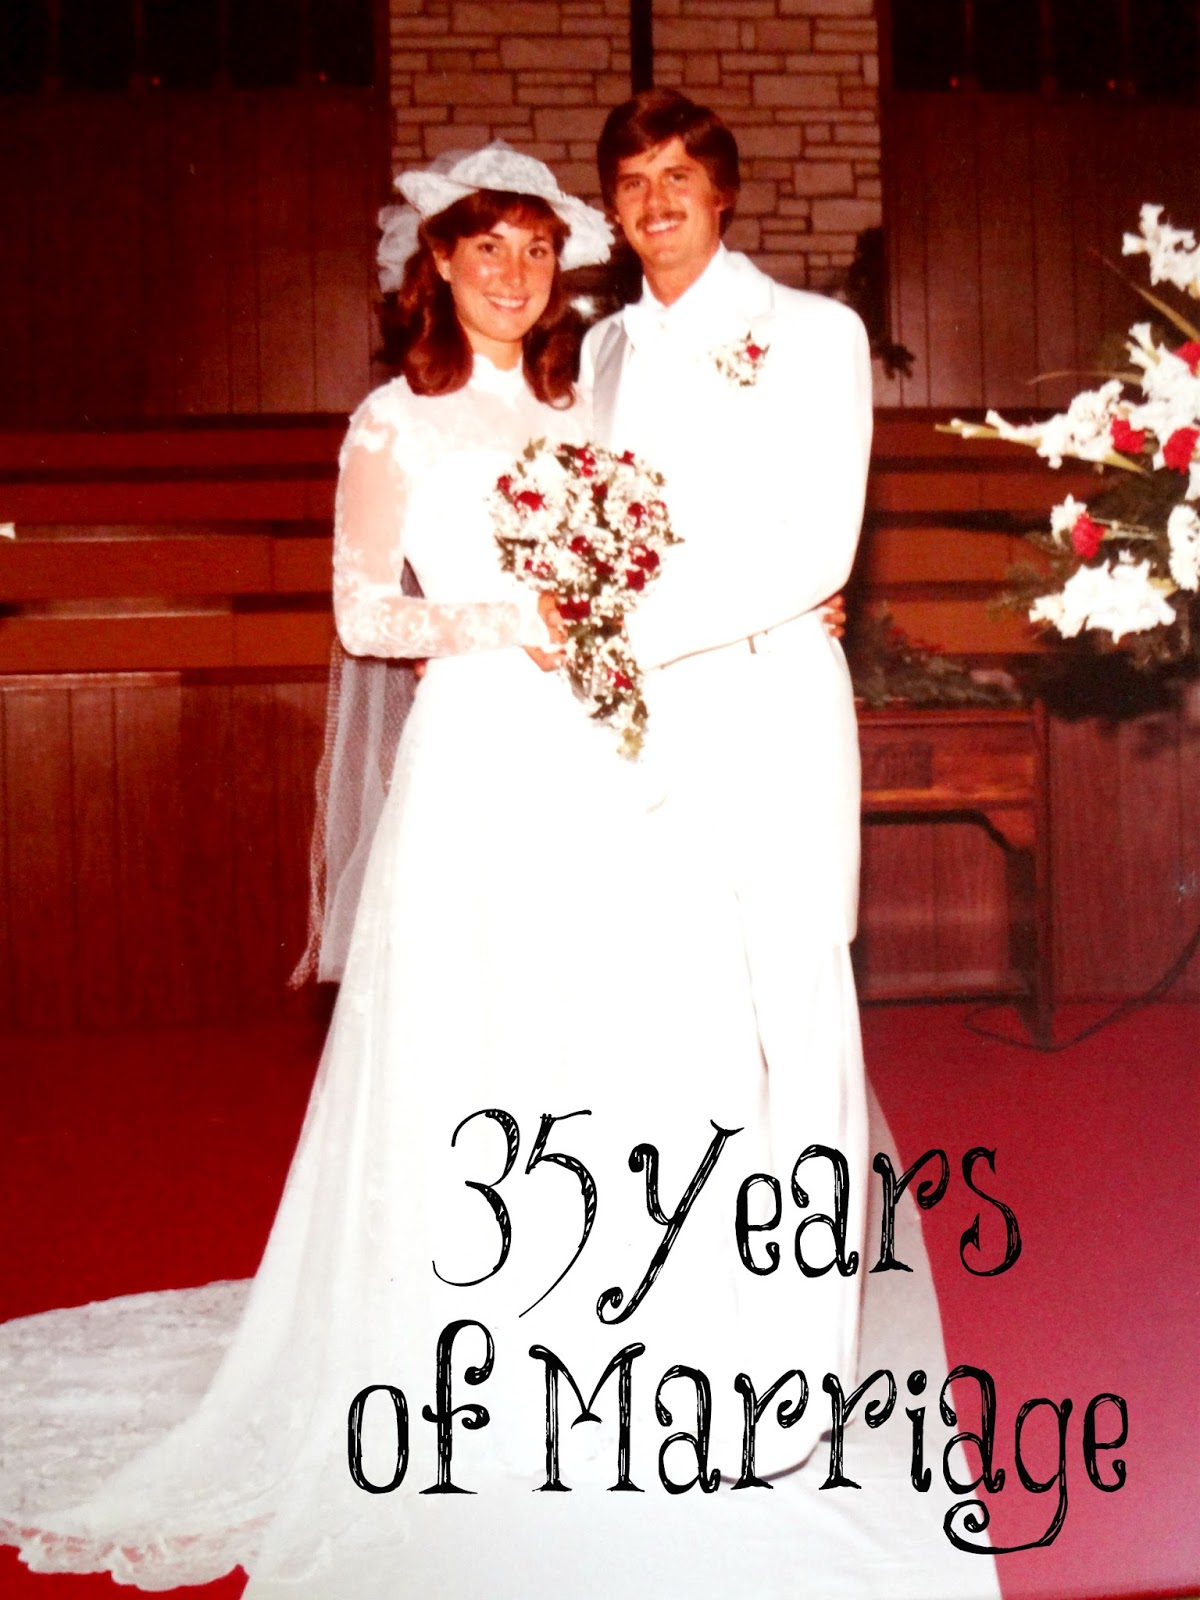 what do you get for 35 years of marriage